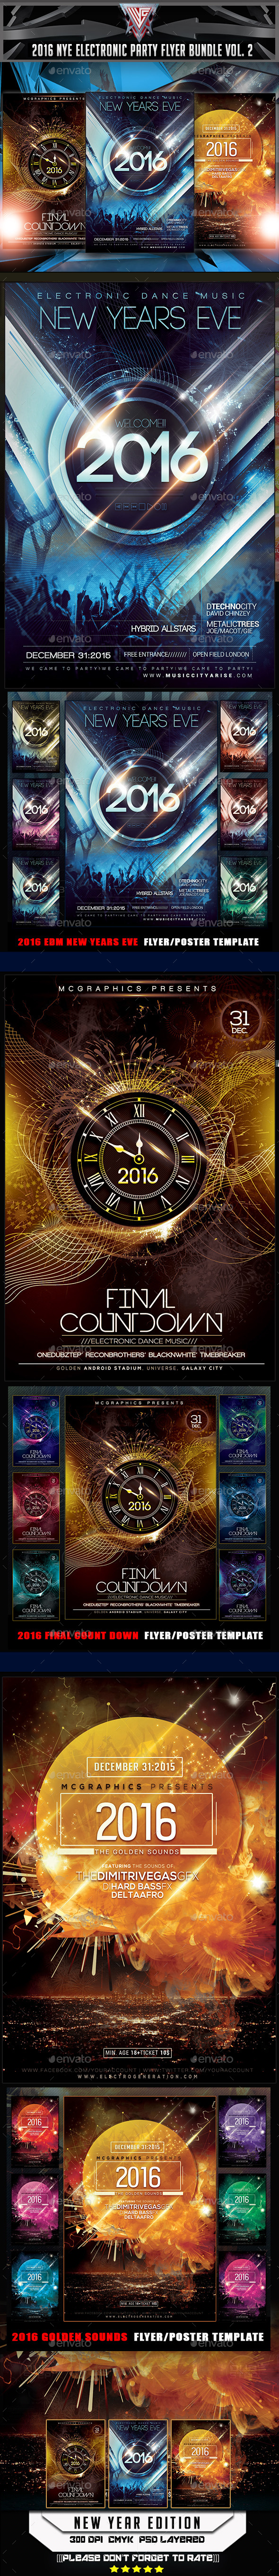 EDM New Years Eve Flyer Template - Flyers Print Templates